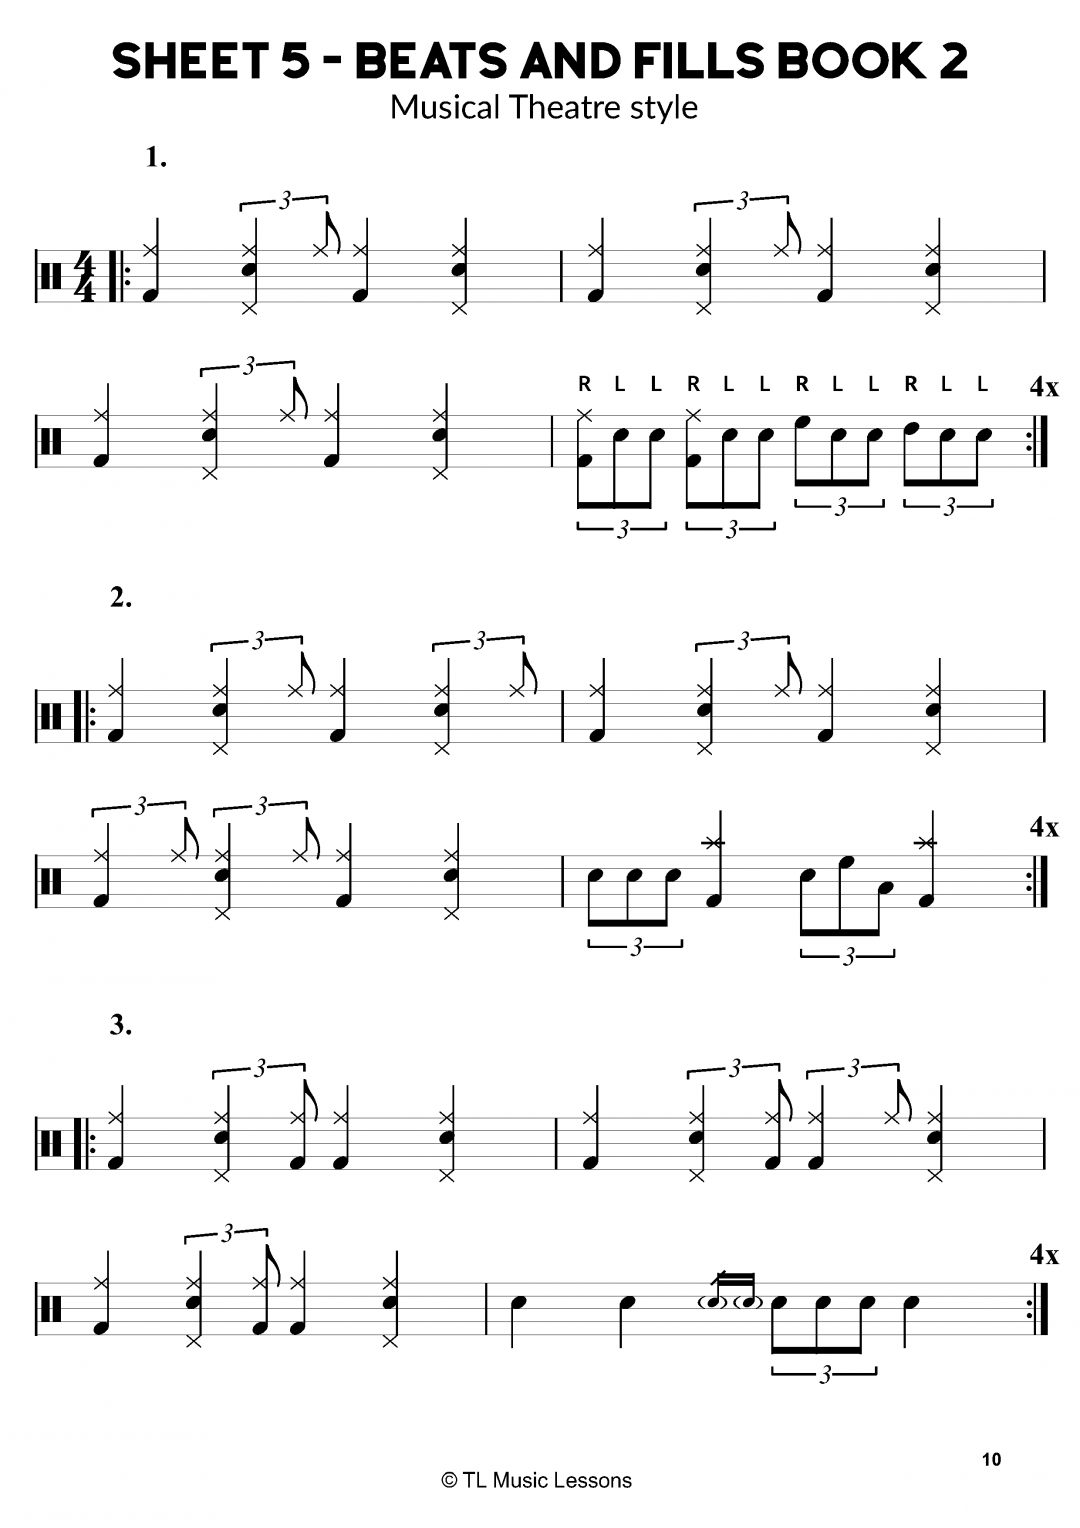 Musical Theatre Drum Beats and fills – Sheet 5 – 40 Beats and Fills Book 2